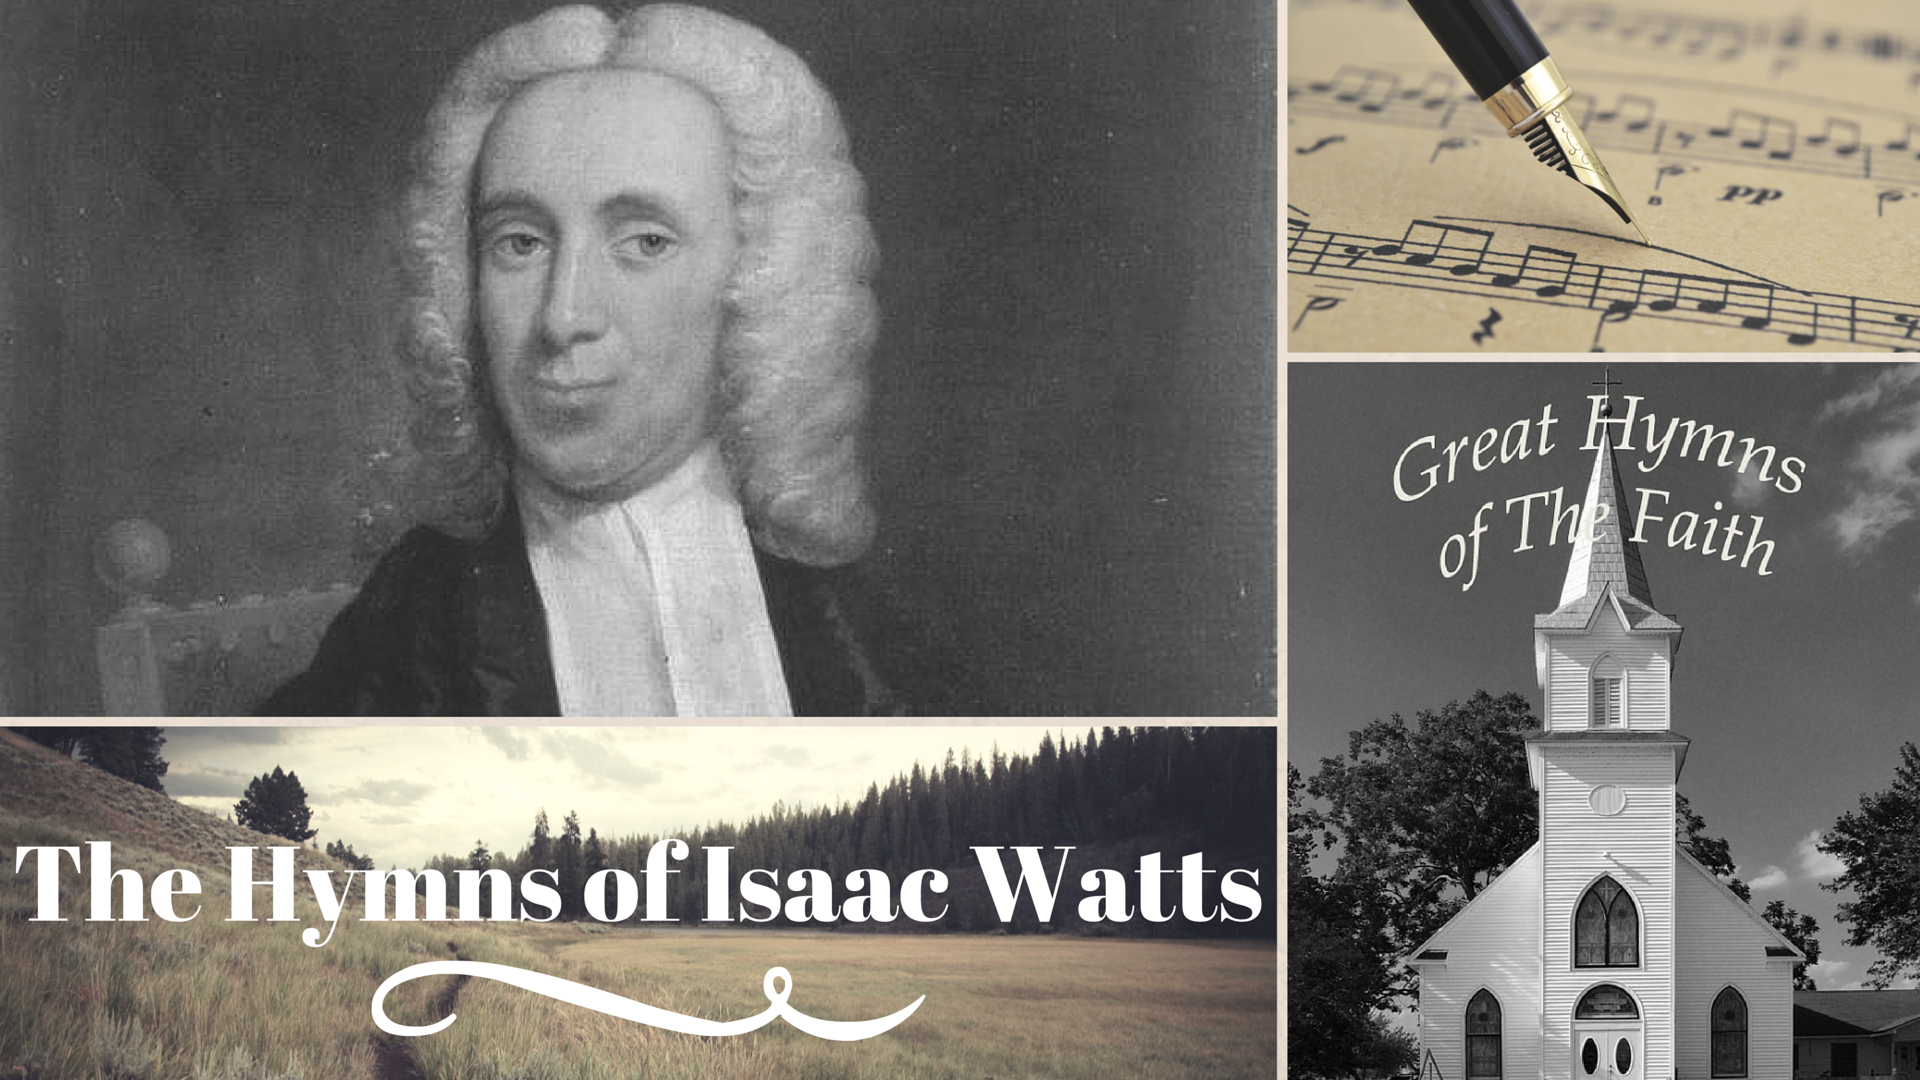 The Hymns of Isaac Watts